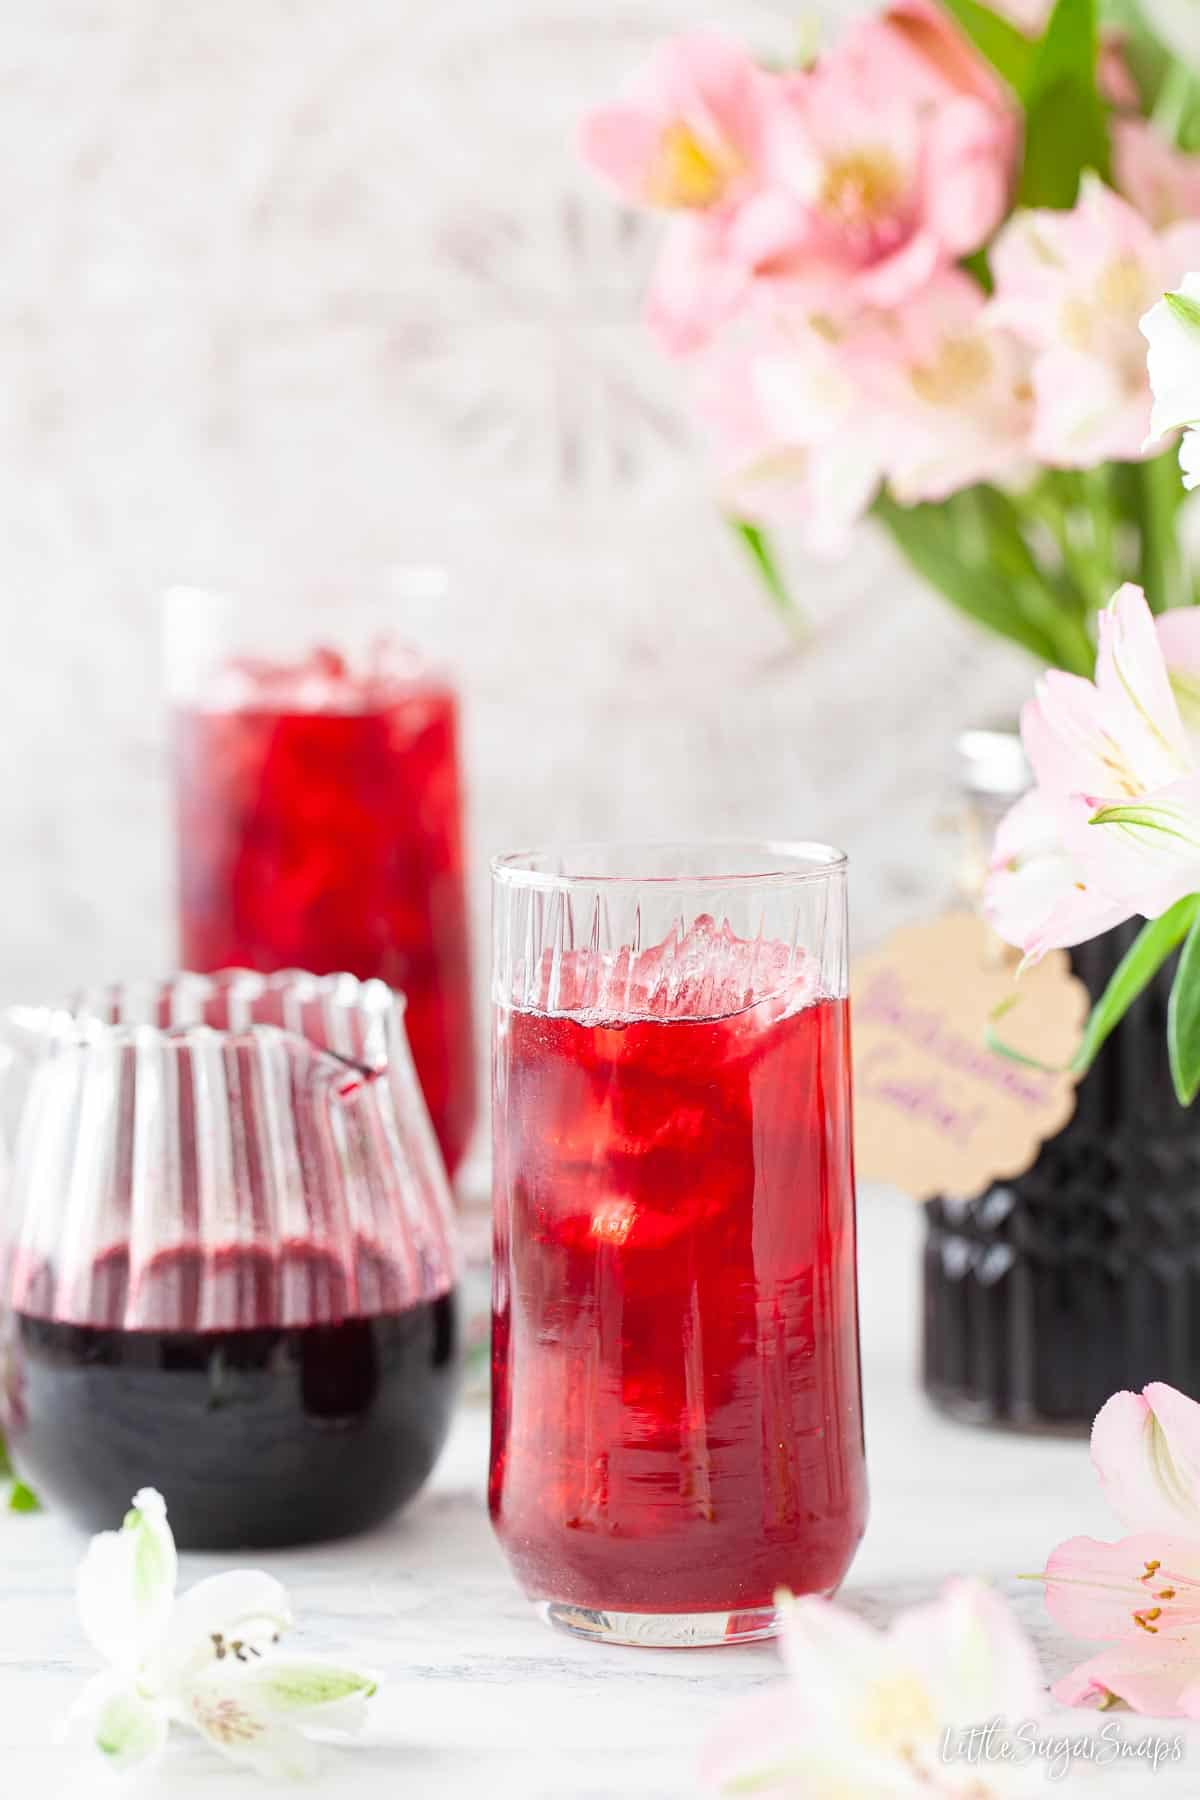 Glasses filled with diluted blackcurrant cordial and ice with a jug of cordial alongside